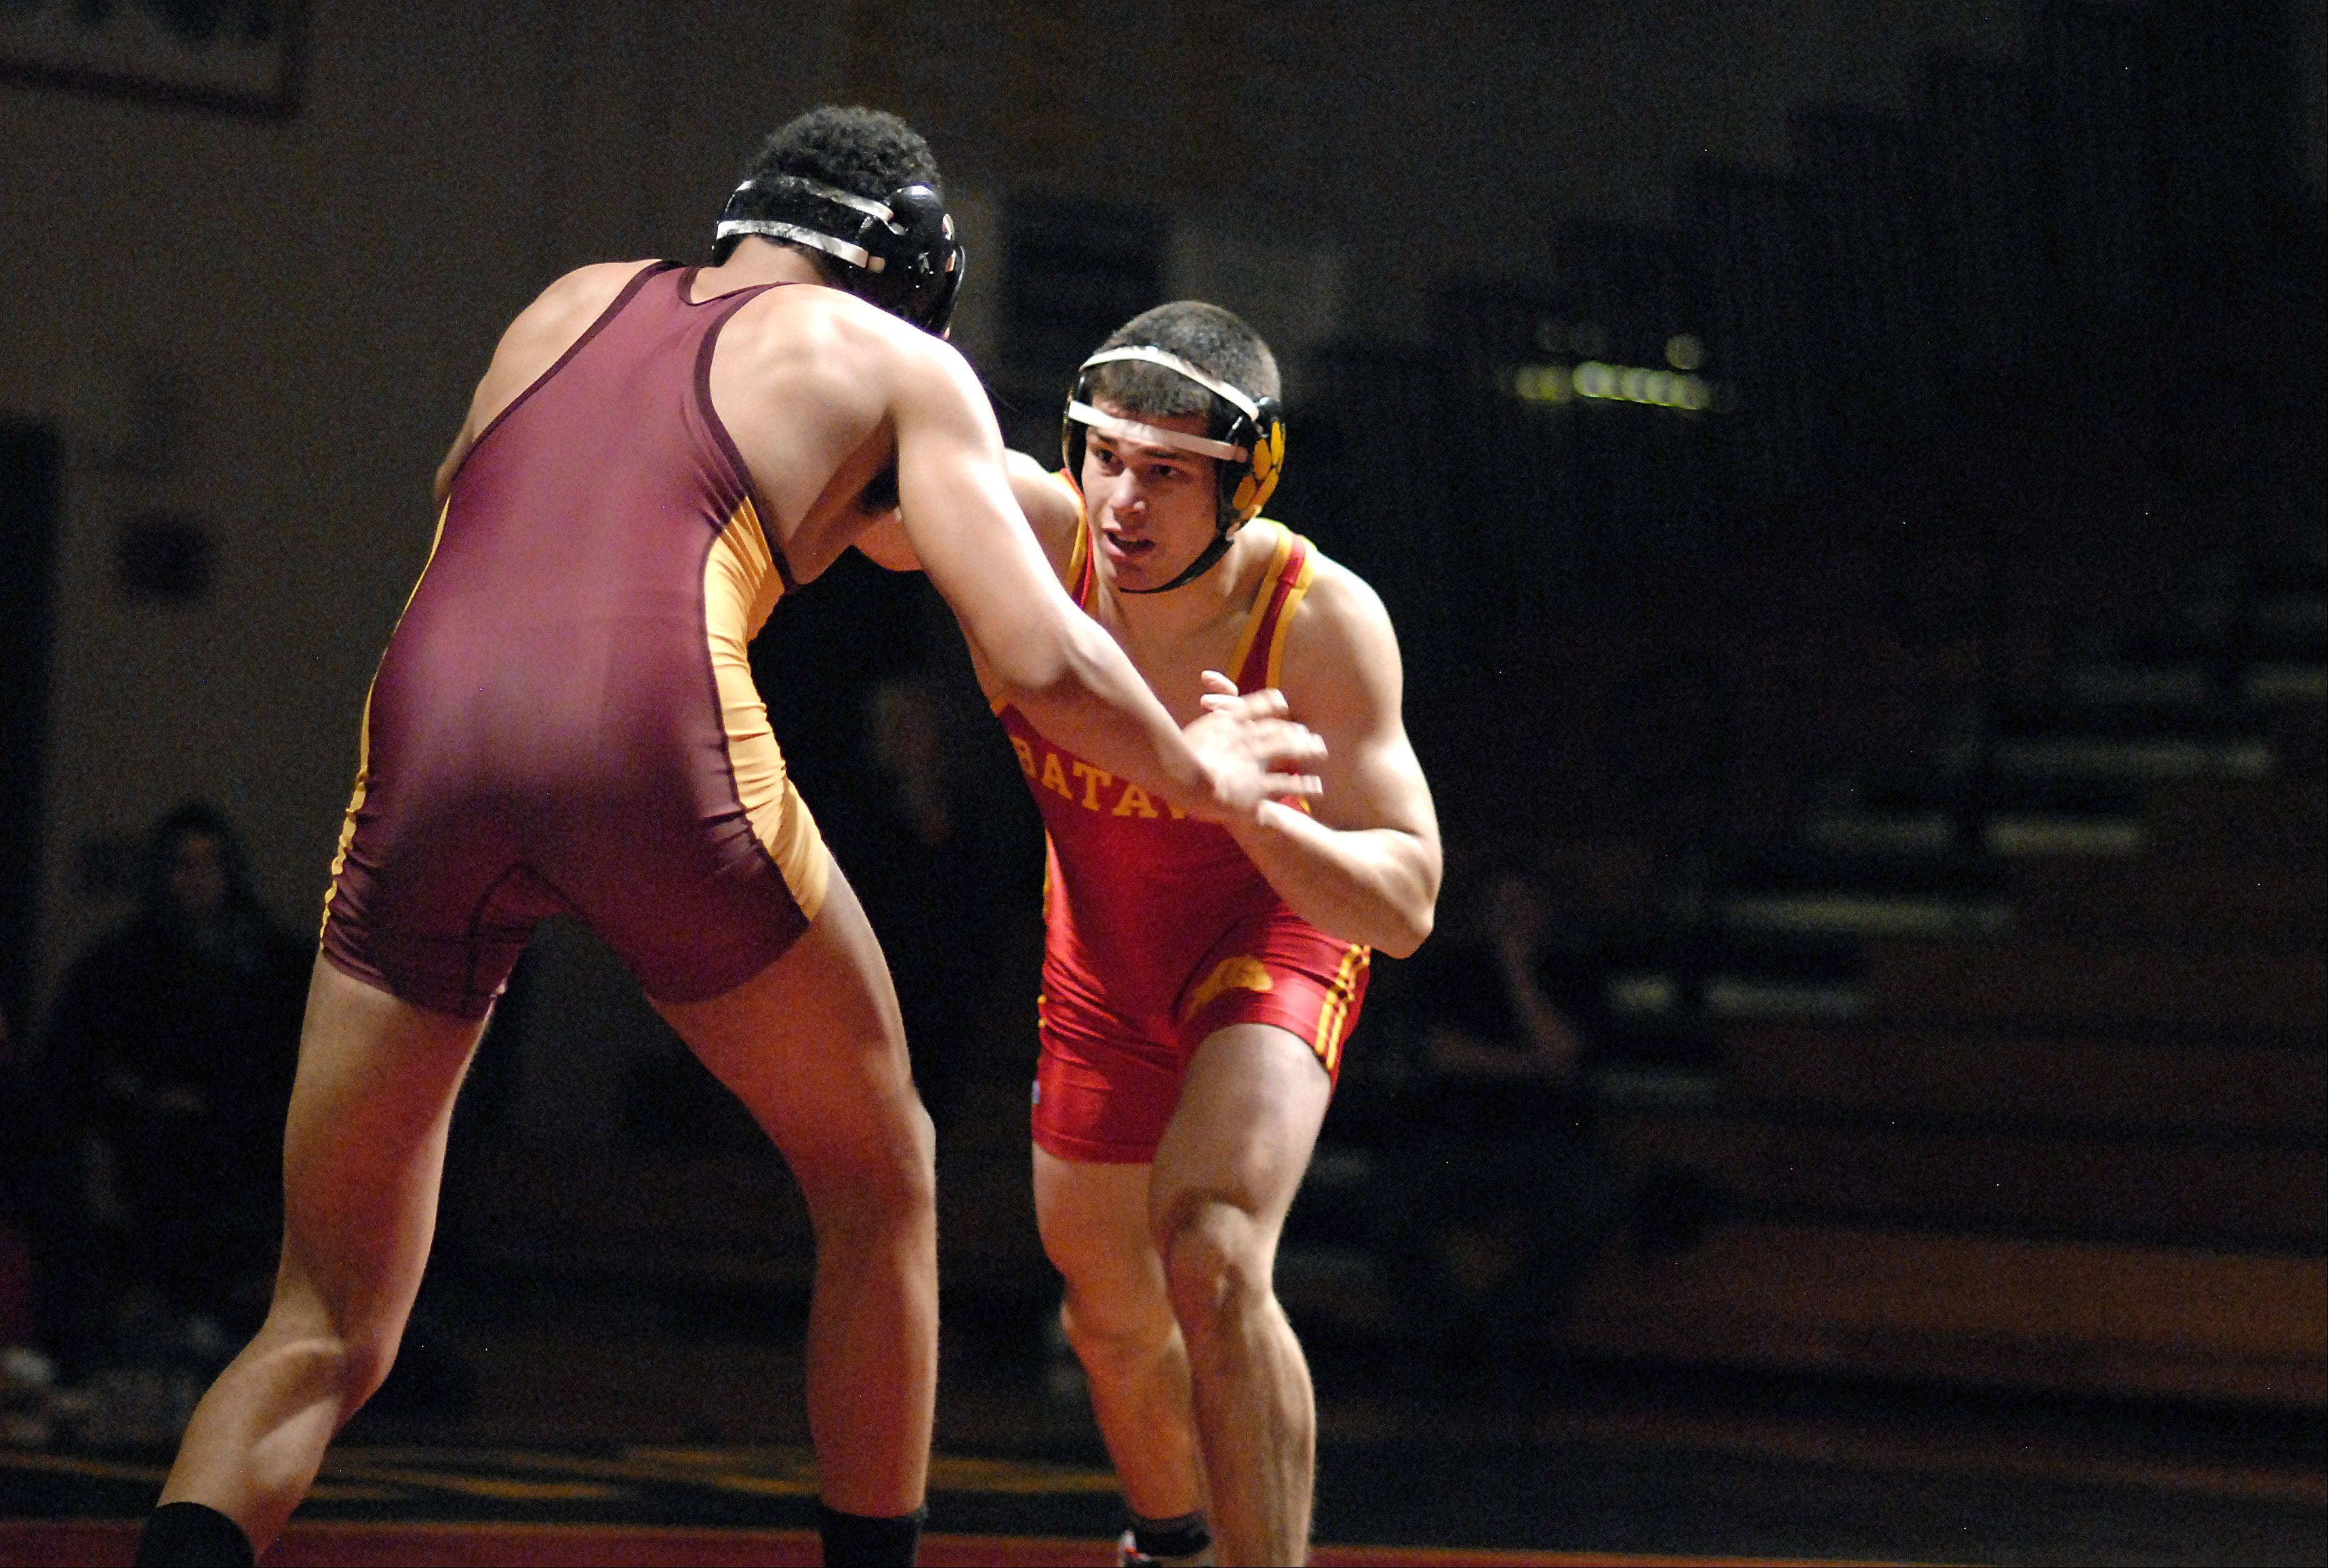 Batavia's Noah Frazier faces Schaumburg's Austin Manetta in the 182 pound match on Saturday, January 5. Manetta took the win.